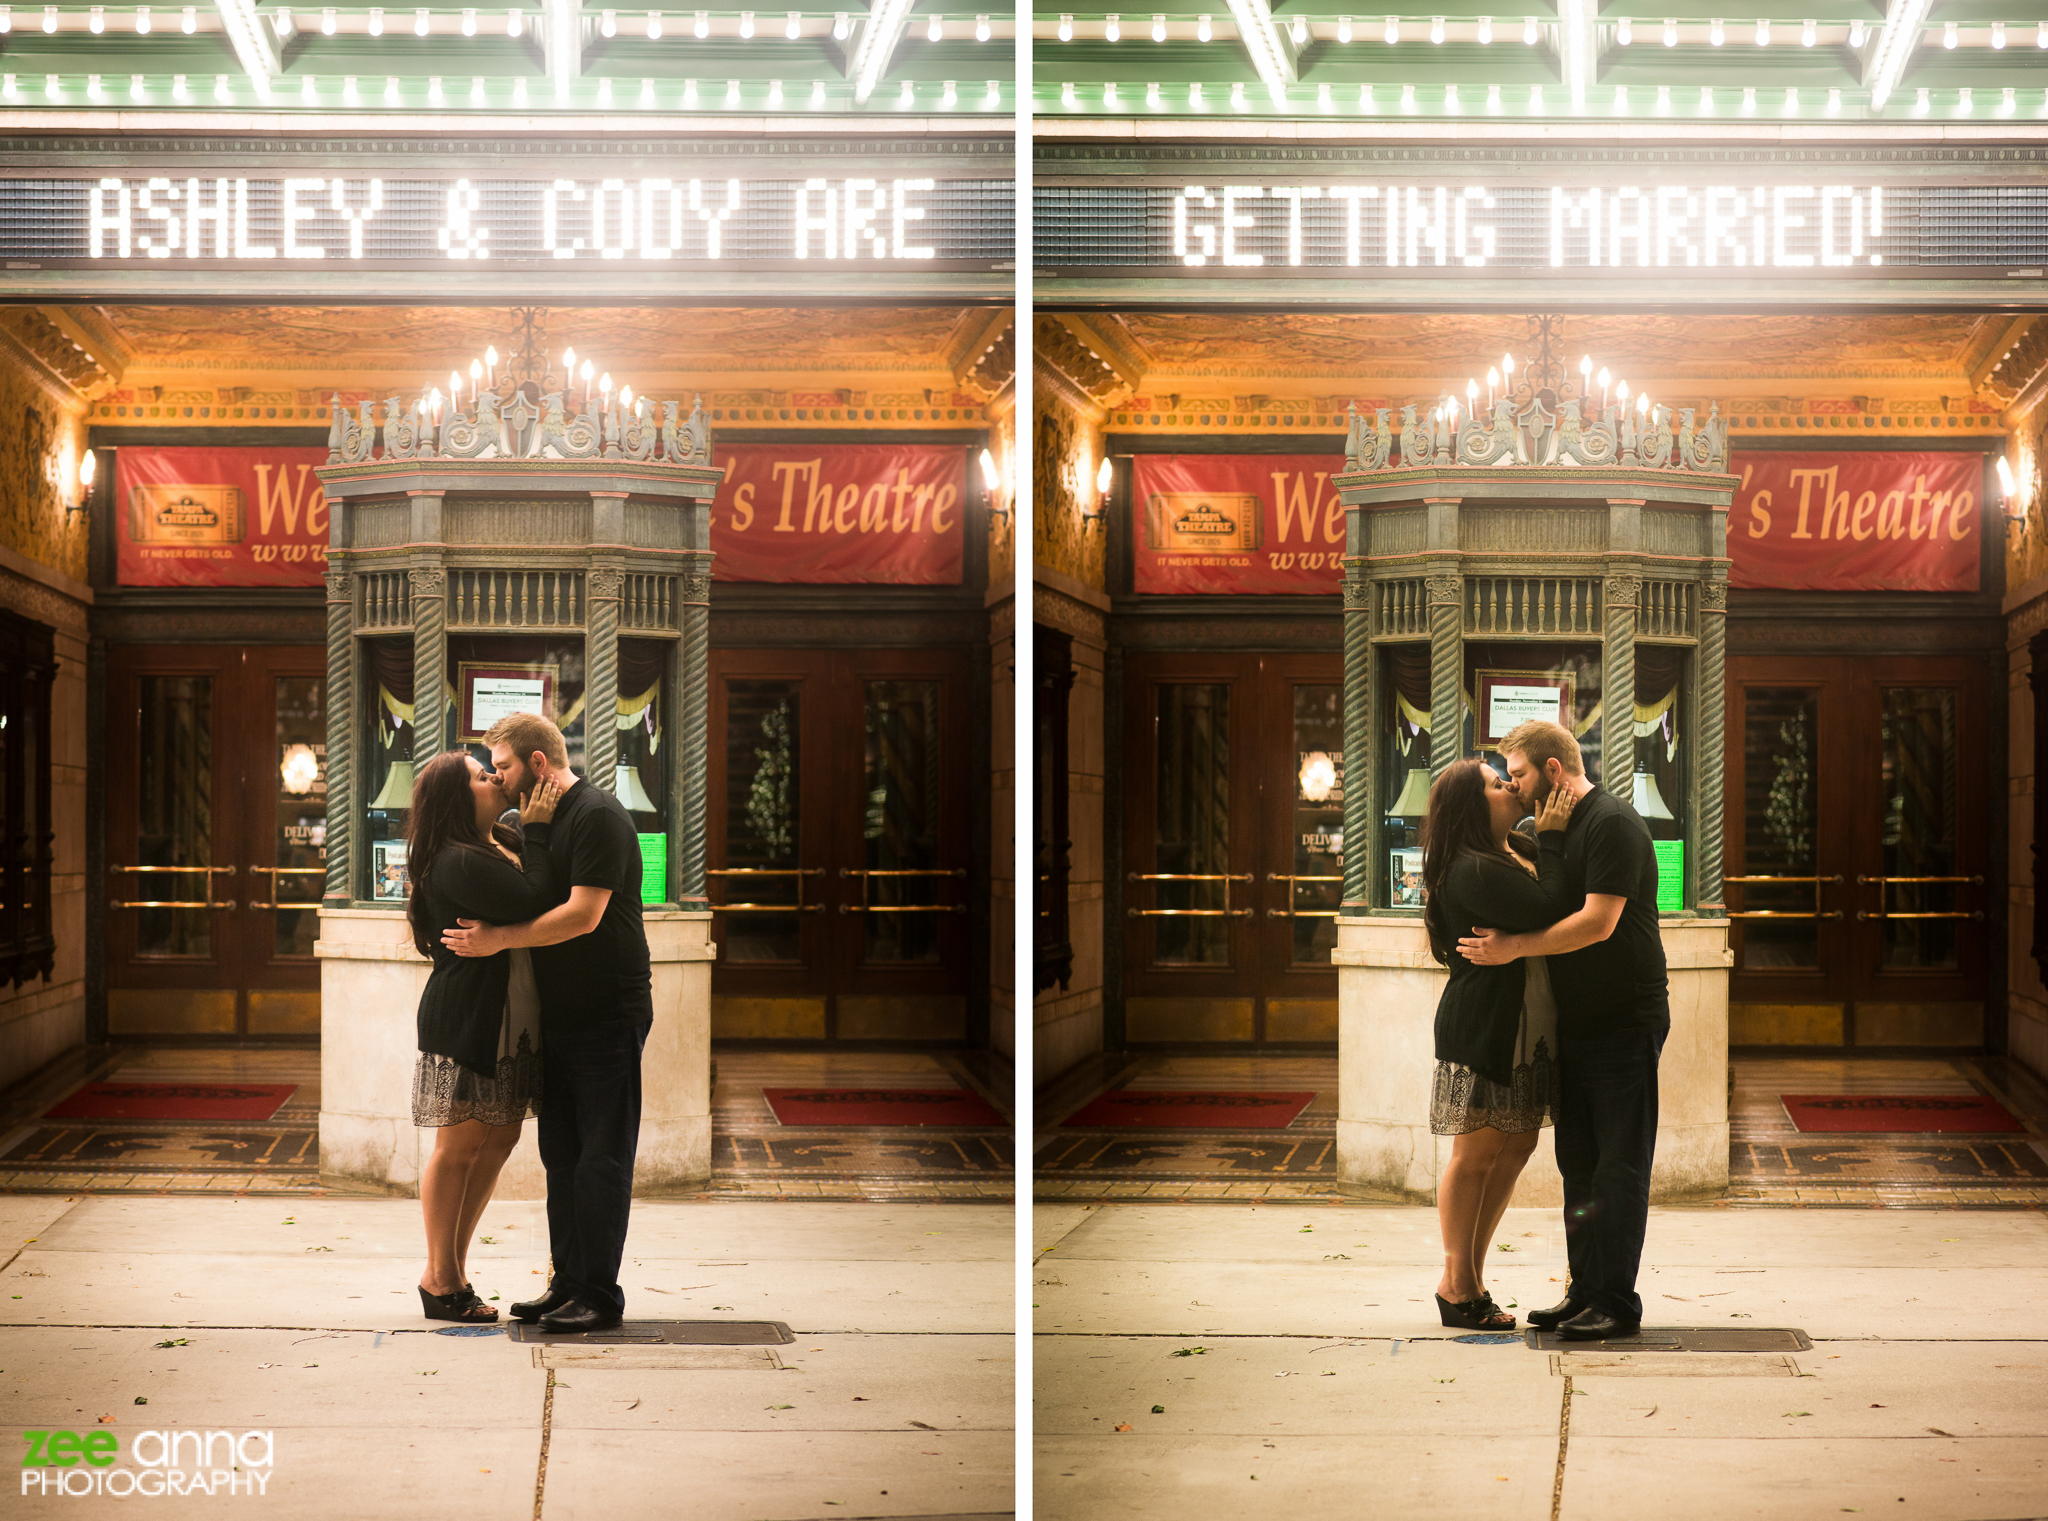 UniversityTampaEngagement-DowntownTampaEngagement-Cody+Ashley-12a